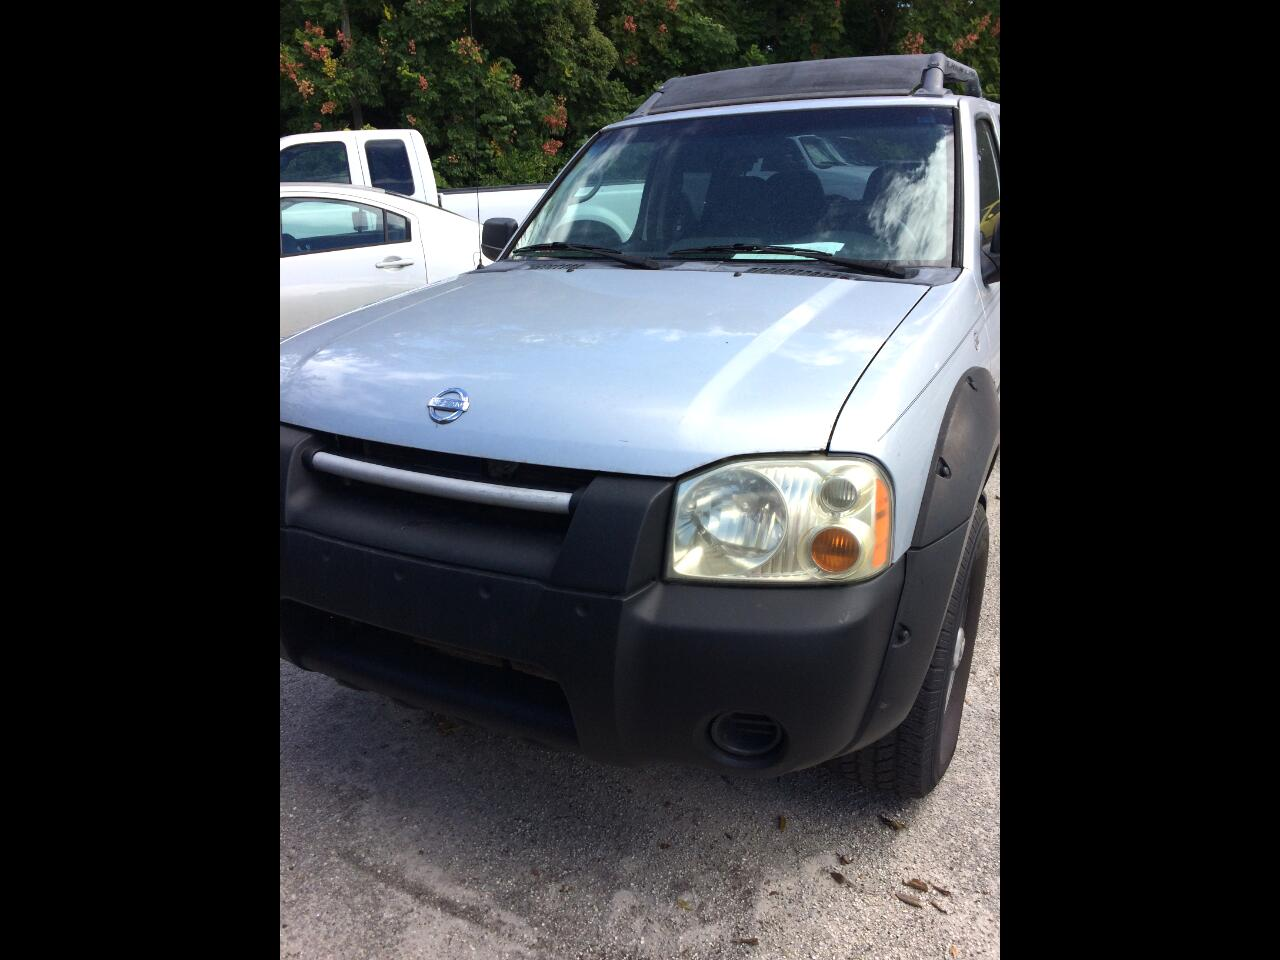 2002 Nissan Frontier 2WD XE Crew Cab V6 Auto Std Bed